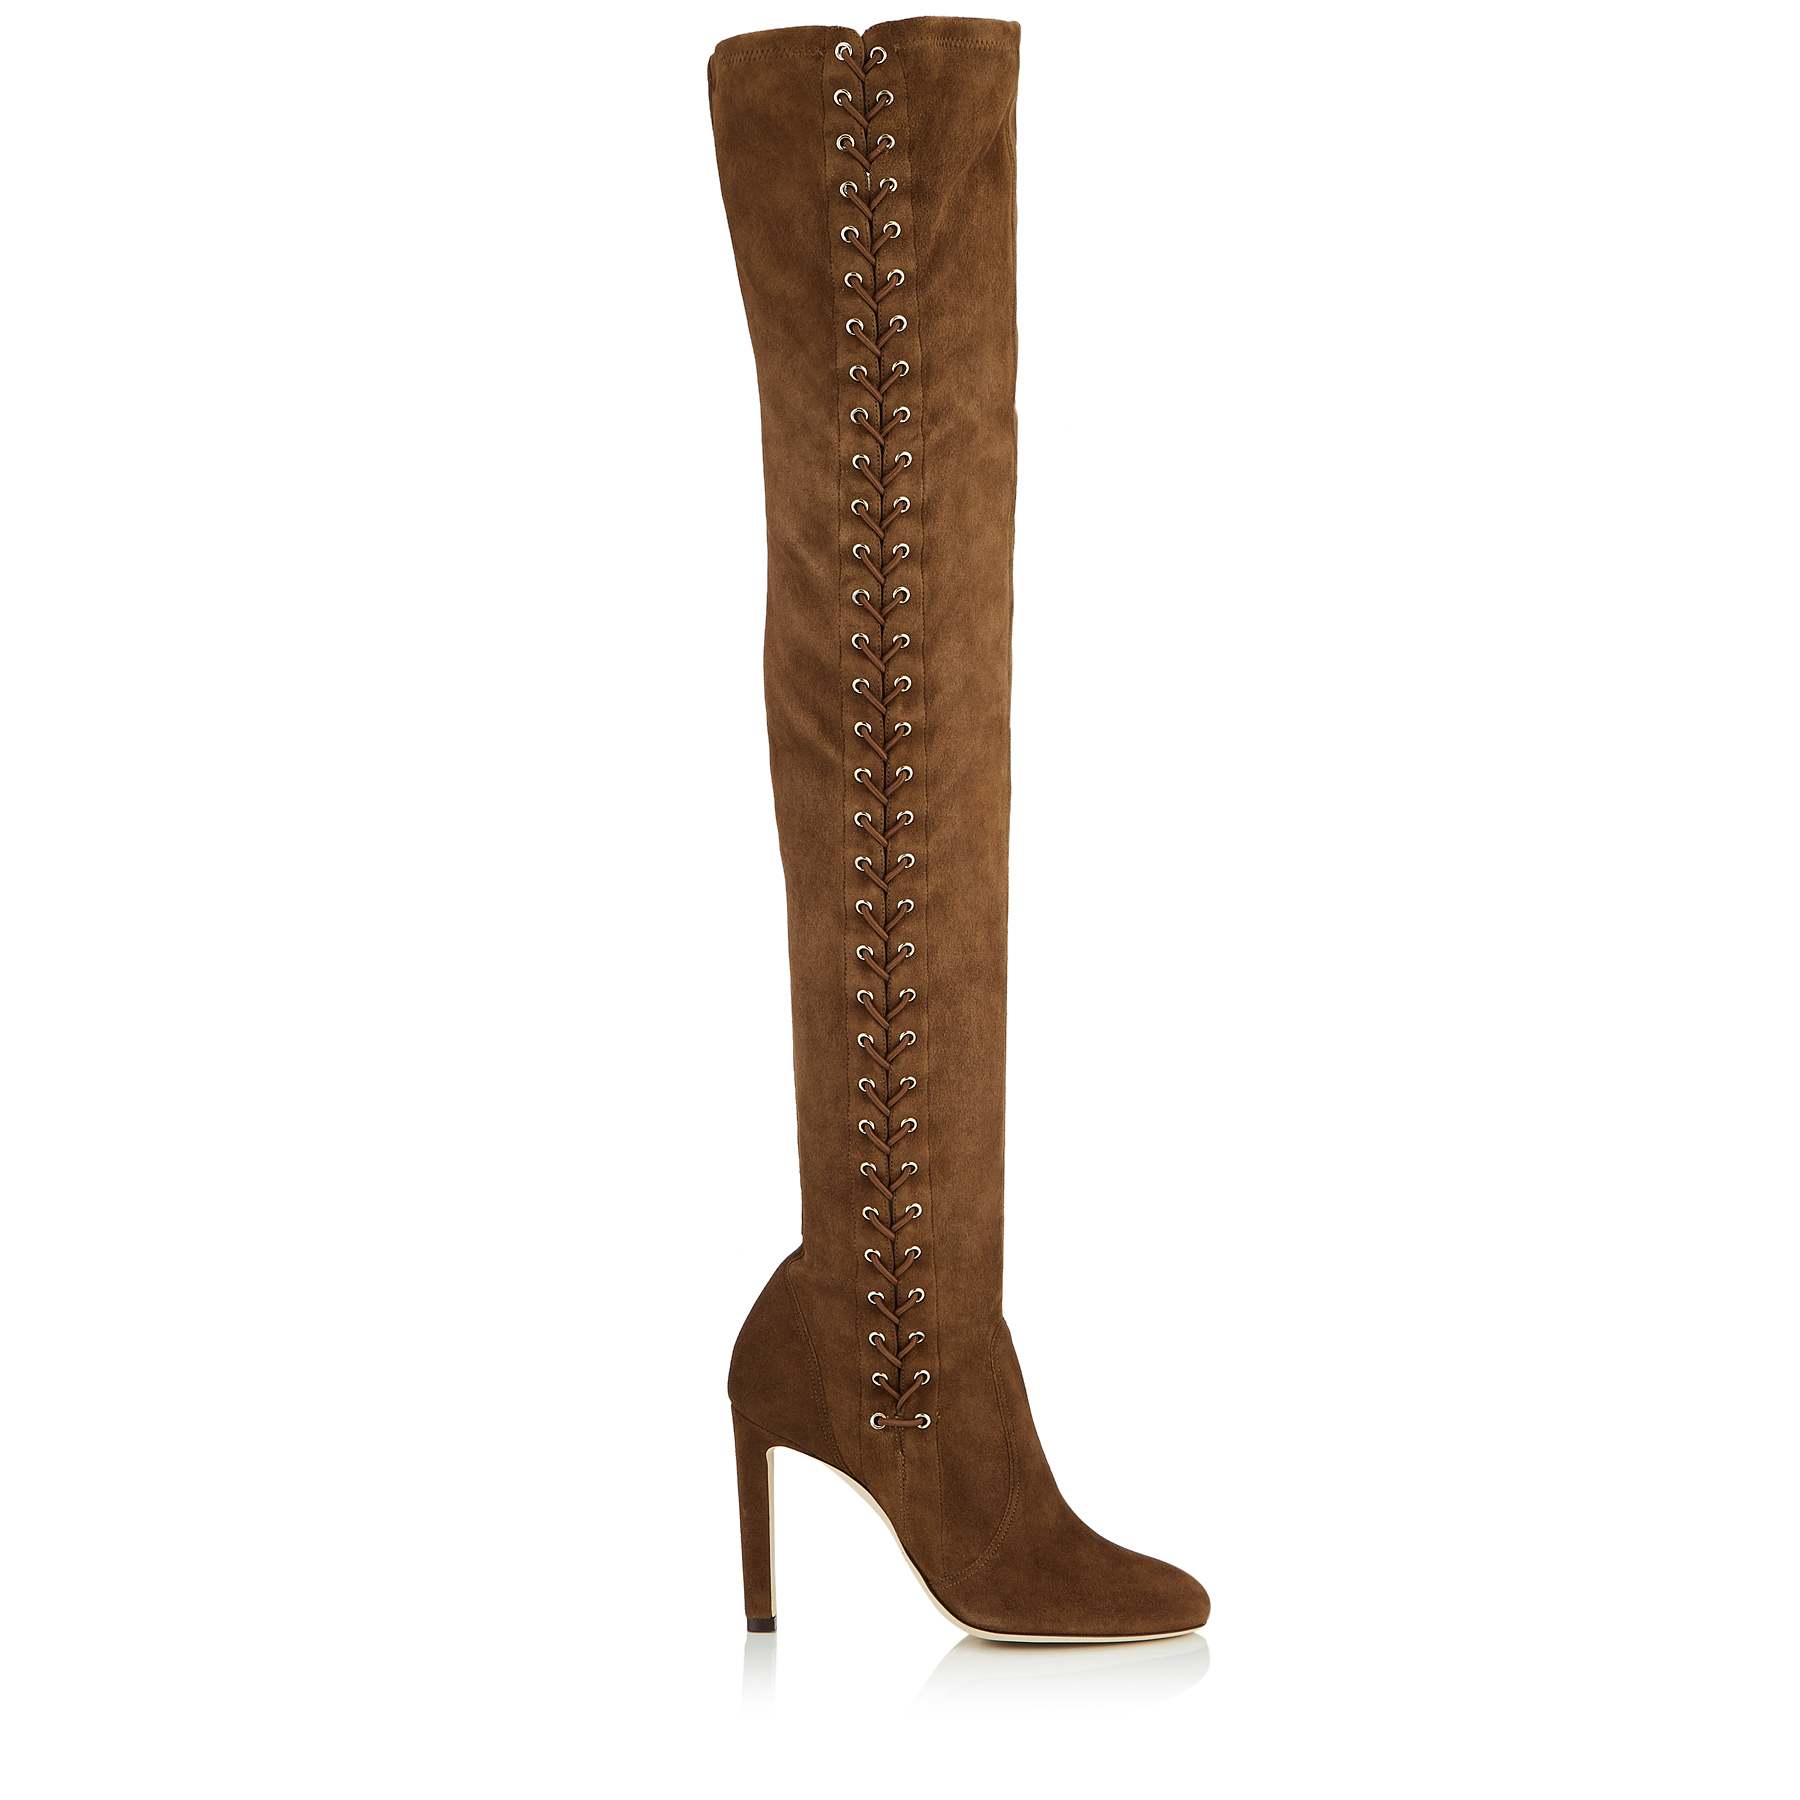 MARIE 100 Cedar Suede Over the Knee Boots by Jimmy Choo